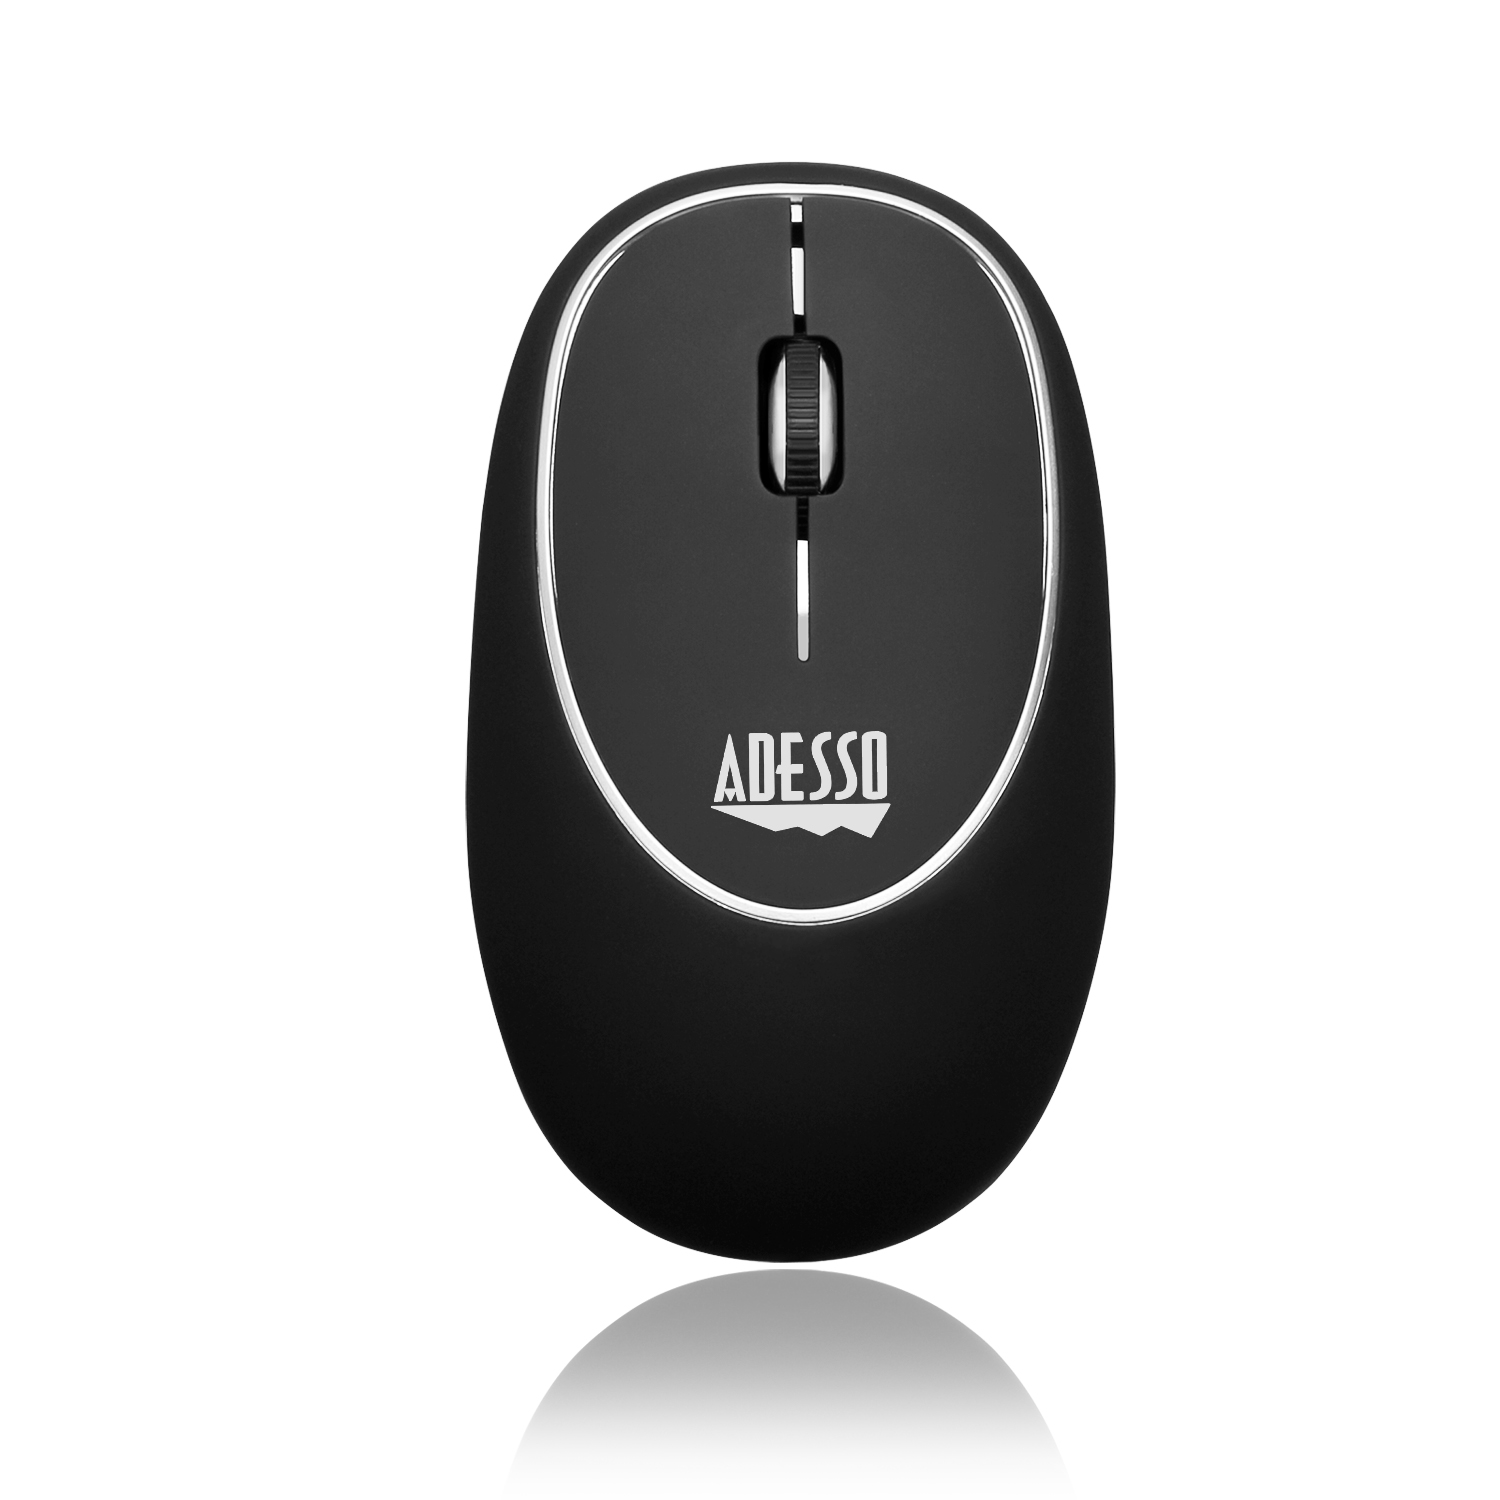 Adesso Imousee60B 2.4Ghz Rf Wireless Anti-Stress Gel Mouse Ergonomic